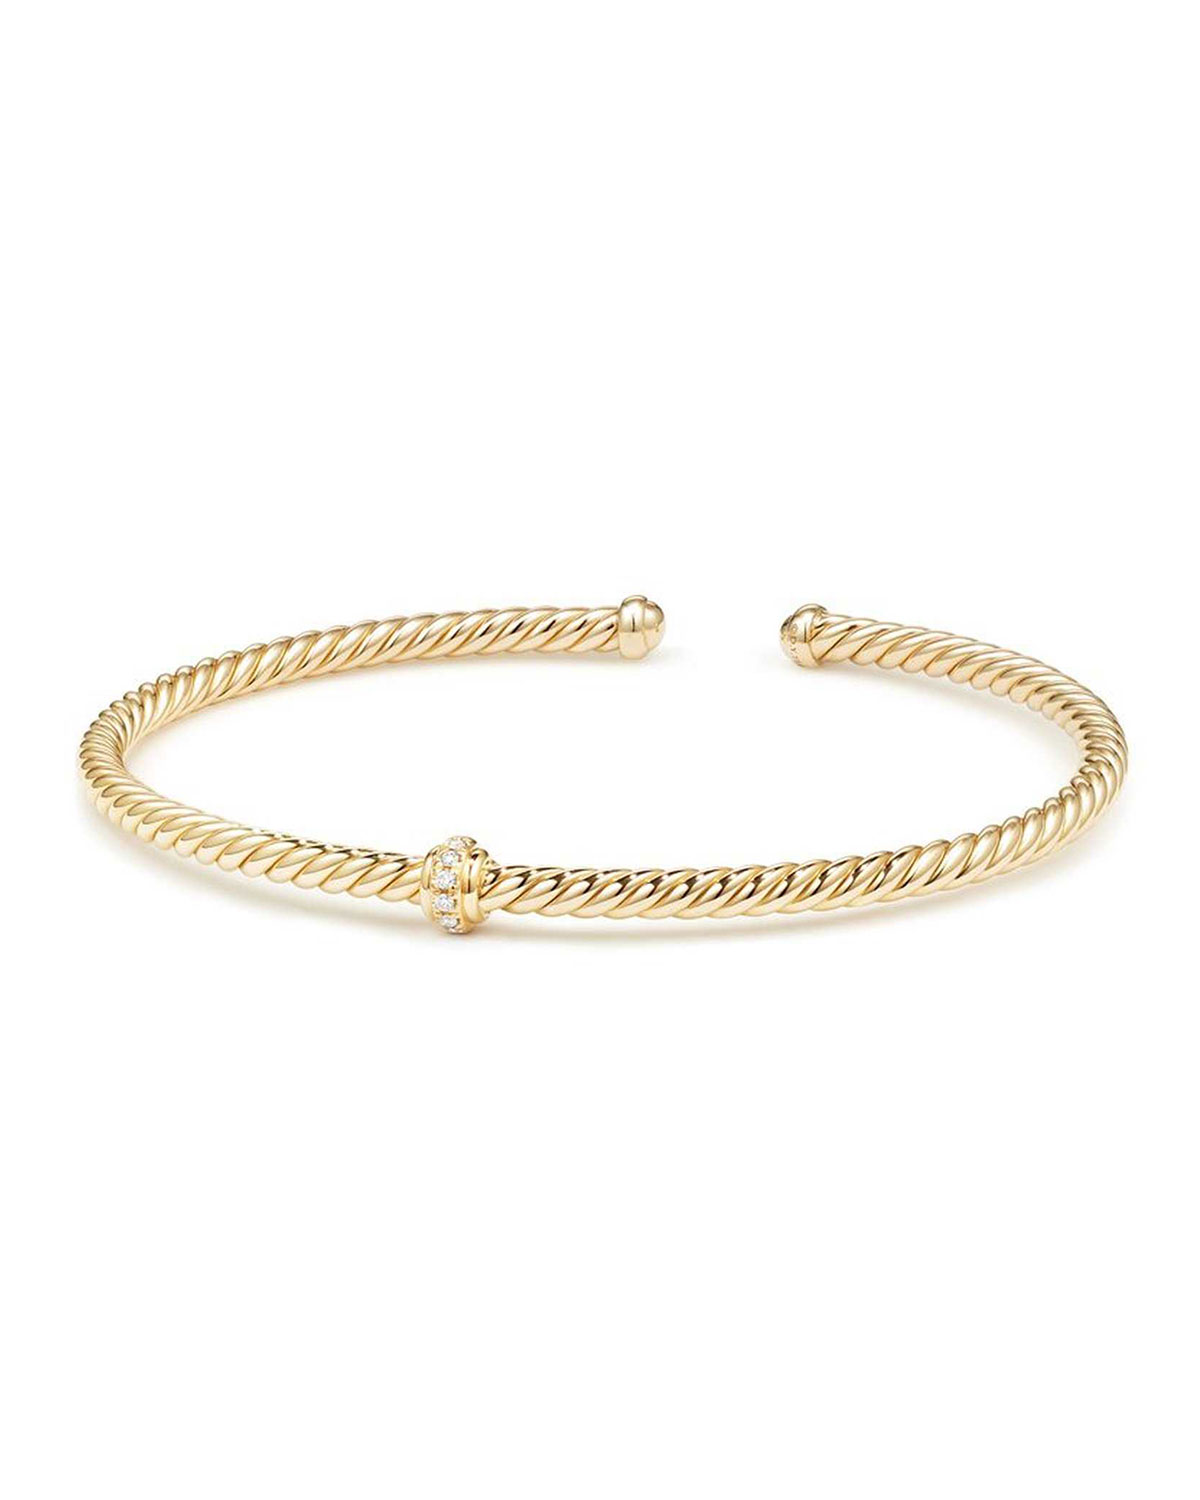 Cablespira 18k Gold Flex Bracelet With Diamond Center Station Size M